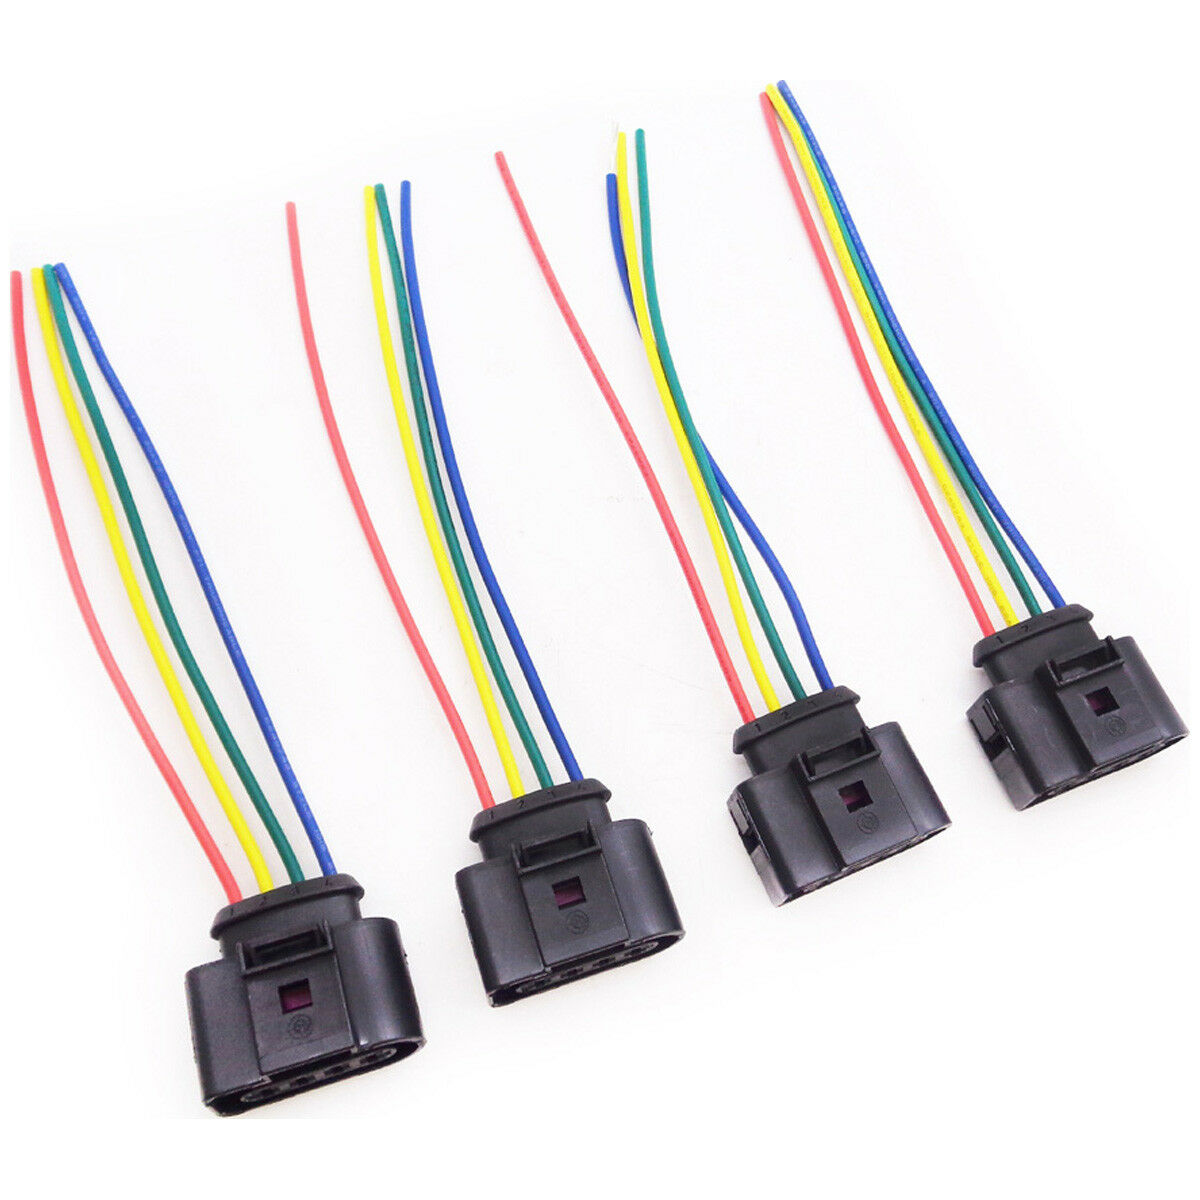 4x Ignition Coil Wiring Harness For Vw New Beetle Passat Polo Loom 1 Sur Voir Plus